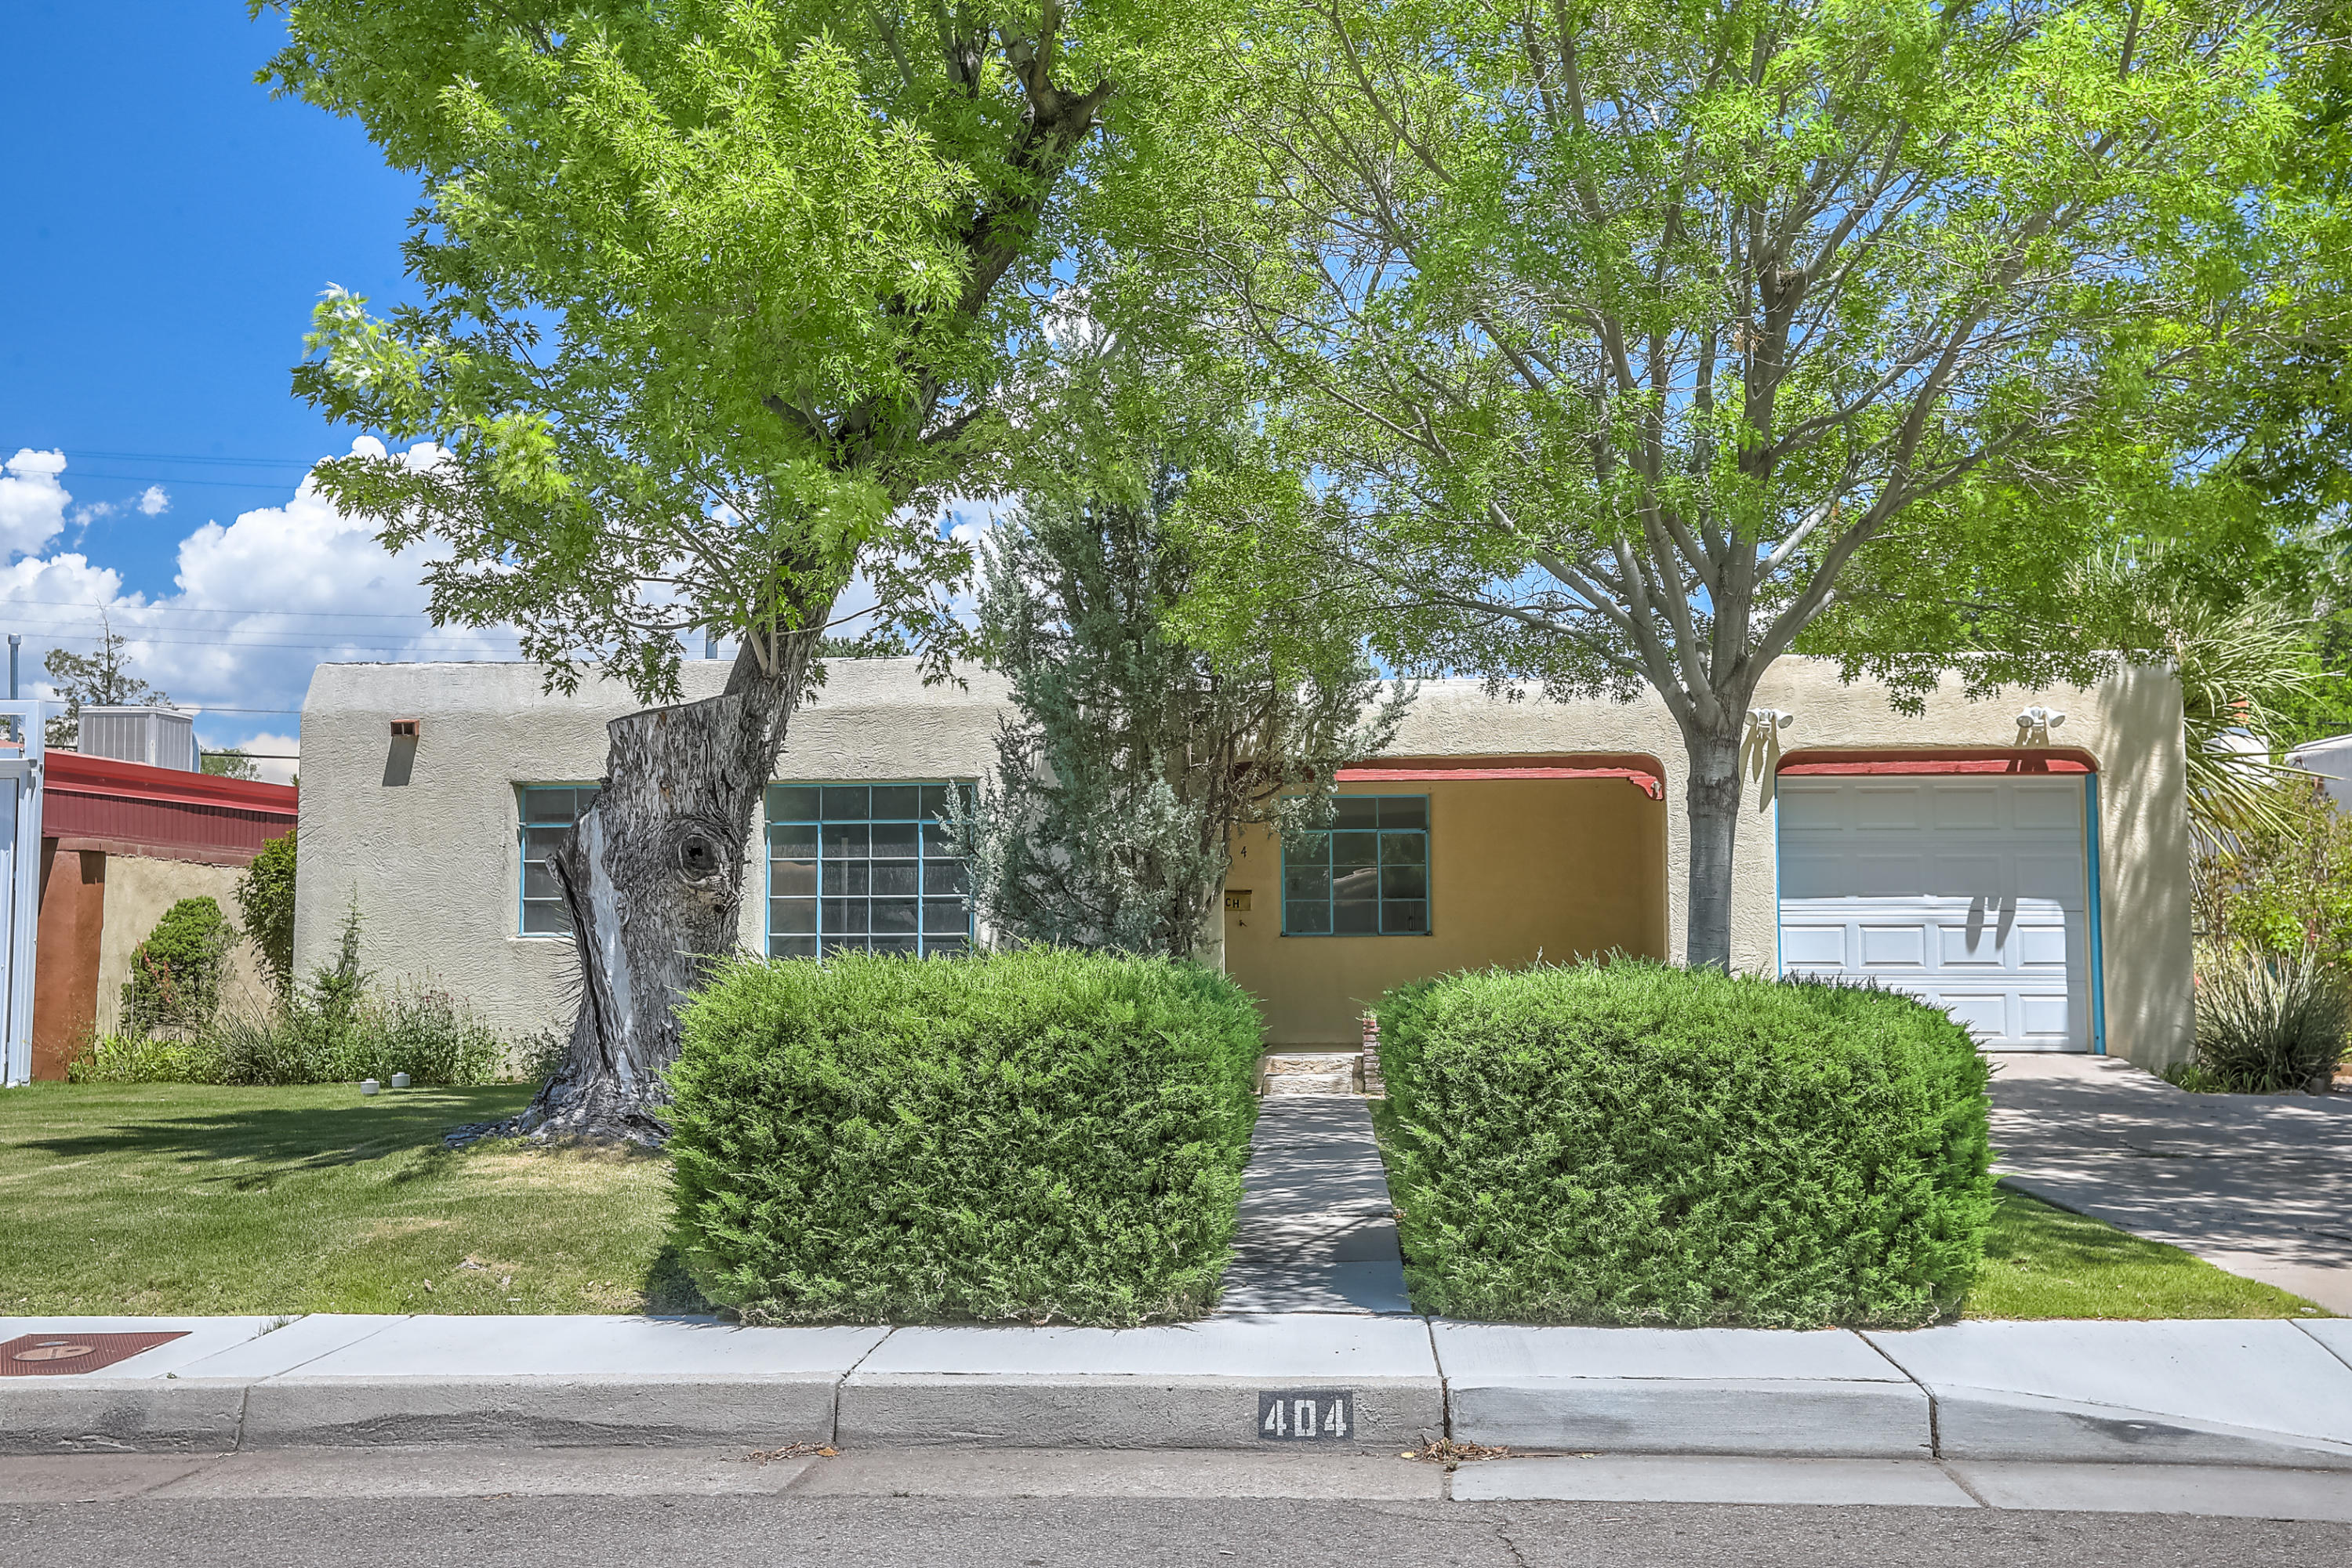 Location, location, location! Walk to Humble Coffee, Nob Hill, and so much more! This charming UNM area is a single owner home and its time to pass it on to another family. With 4 bedrooms and 2.5 baths this home offers plenty of space. The primary bedroom has a 3/4 bath and is separated from the other bedrooms. 3 additional bedrooms are spacious and one has a half bathroom. The den off of the kitchen is a great space for entertaining with the fireplace and large windows for natural light. Enjoy the backyard patio space with roses and other mature landscaping. There is a single car garage with a workshop space as well. This location cannot be beat!